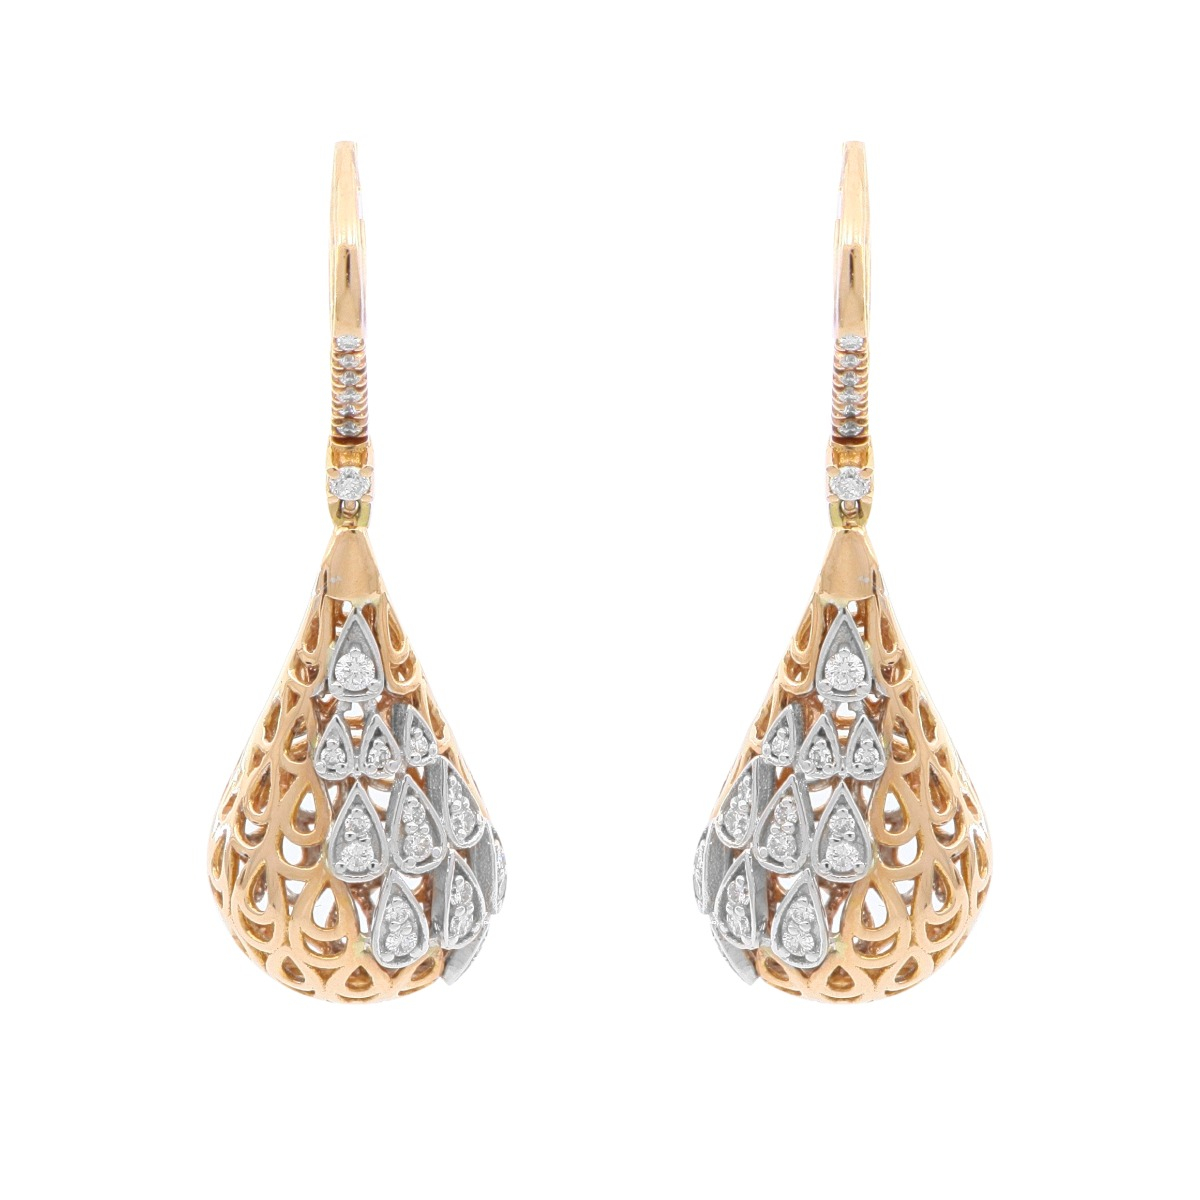 Rose and White Gold Drop Earrings